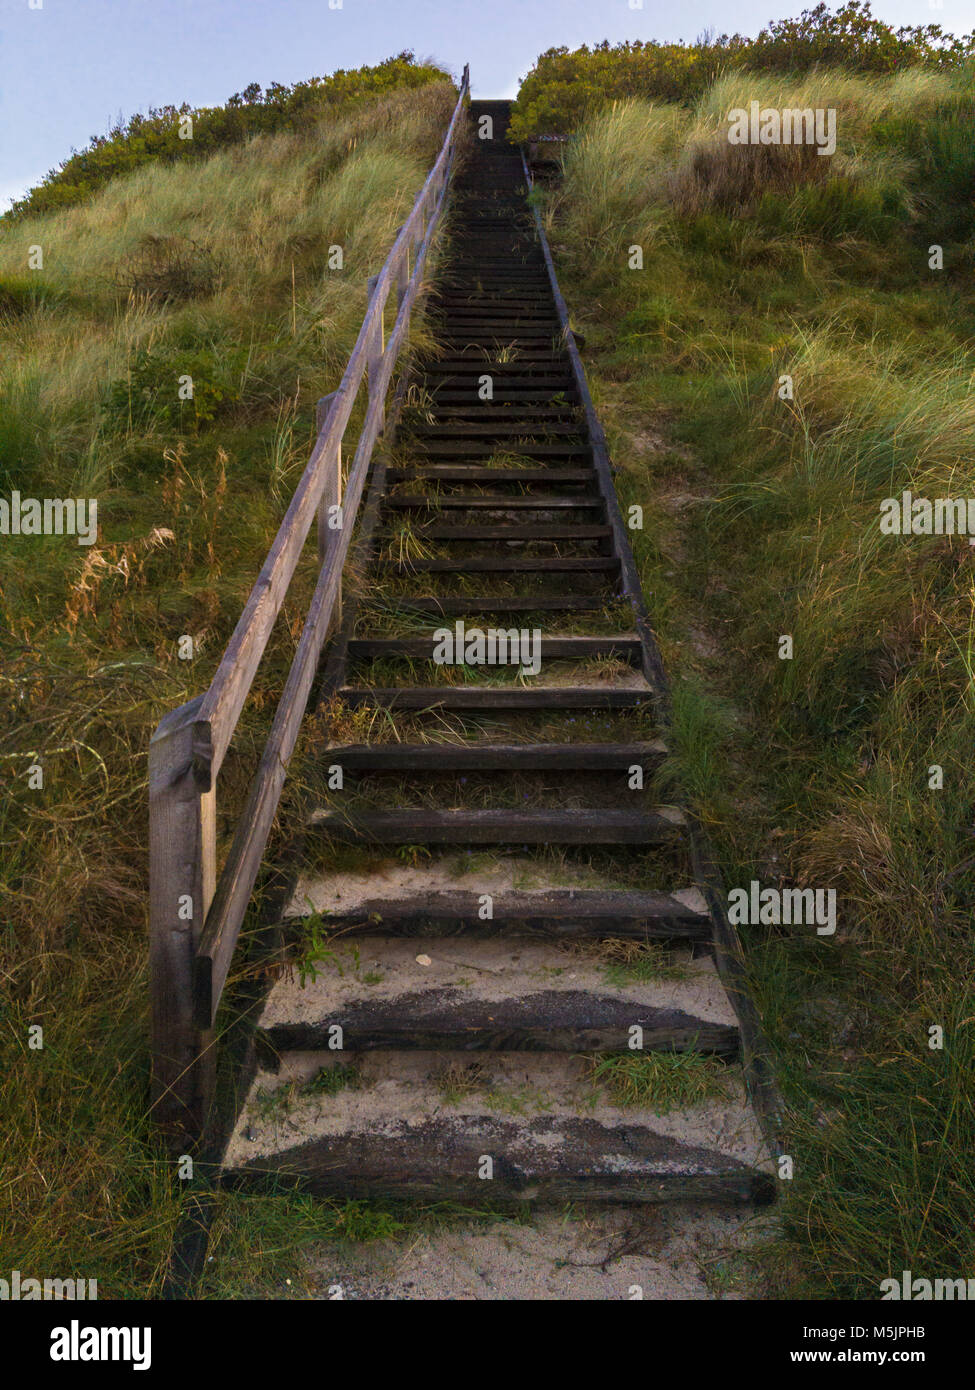 Wooden stair to the lookout on a sand dune,Henne Strand,Syddanmark,Denmark - Stock Image